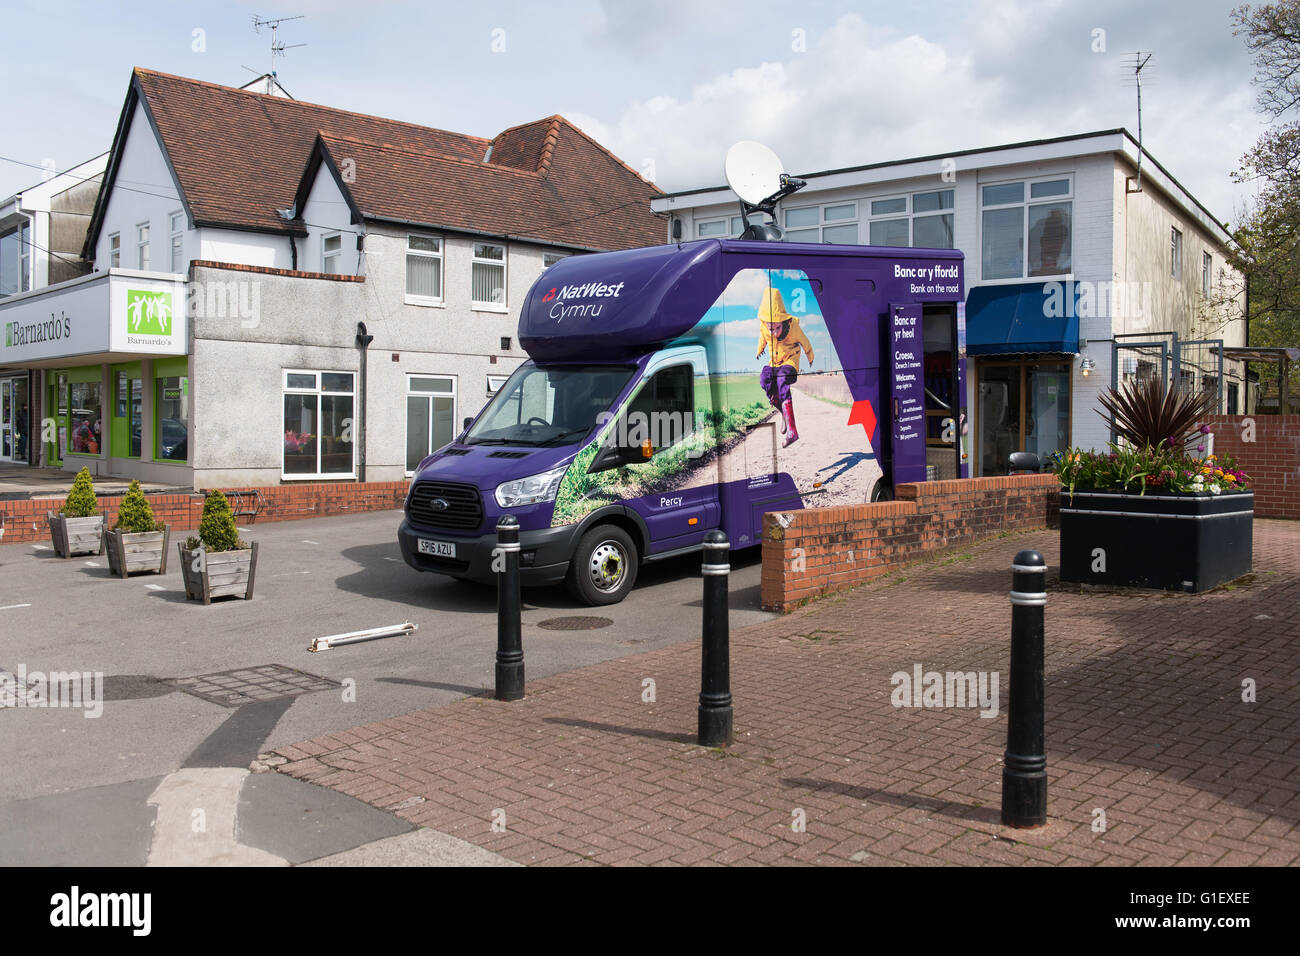 Natwest mobile bank branch van in Rhiwbina, Cardiff, south Wales. - Stock Image